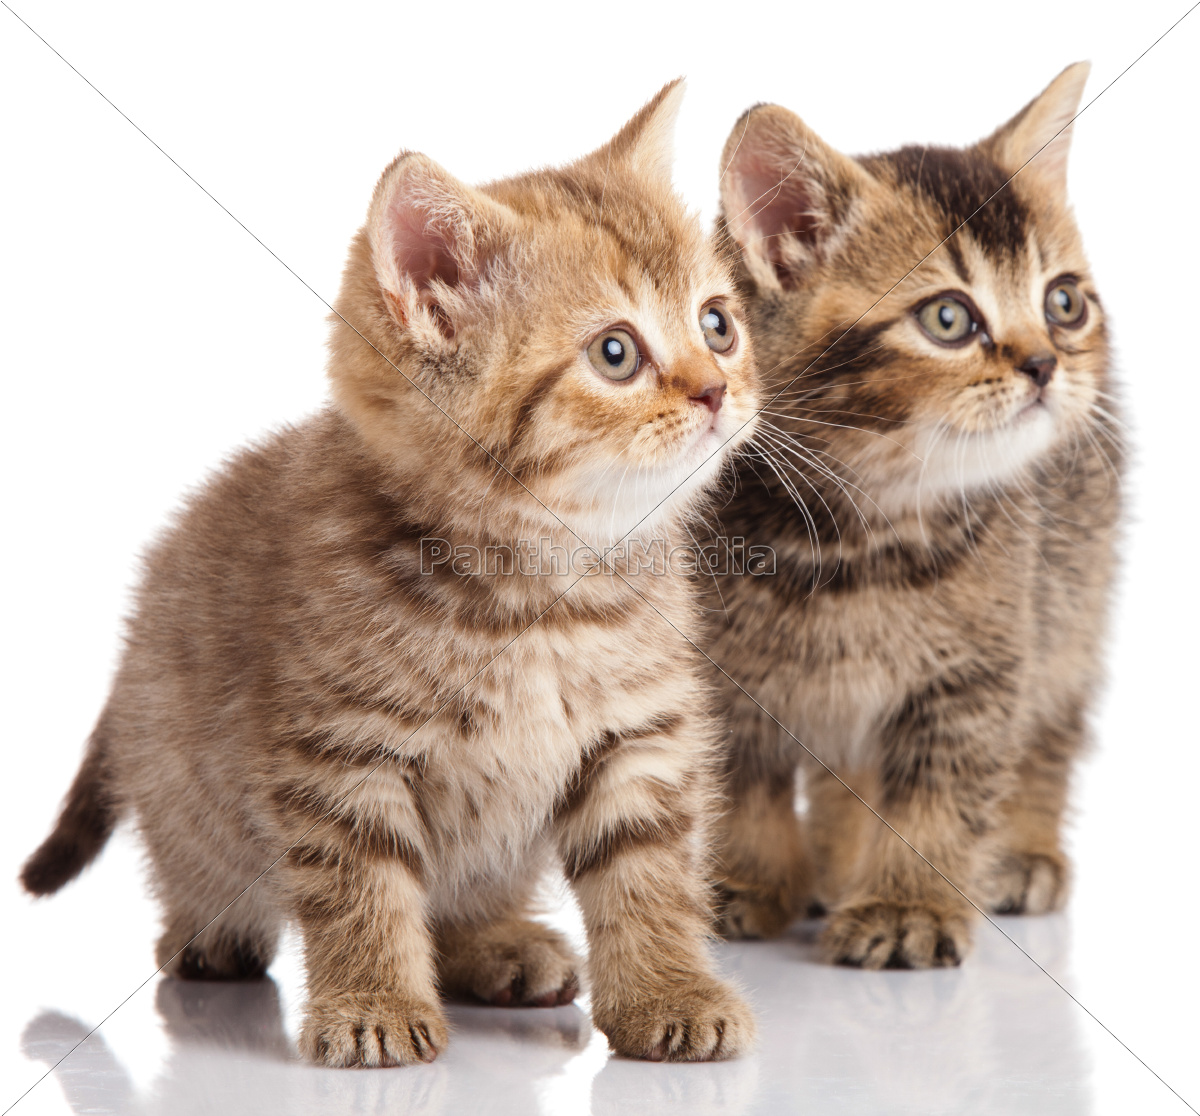 two, kitten, on, a, white, background - 10220645